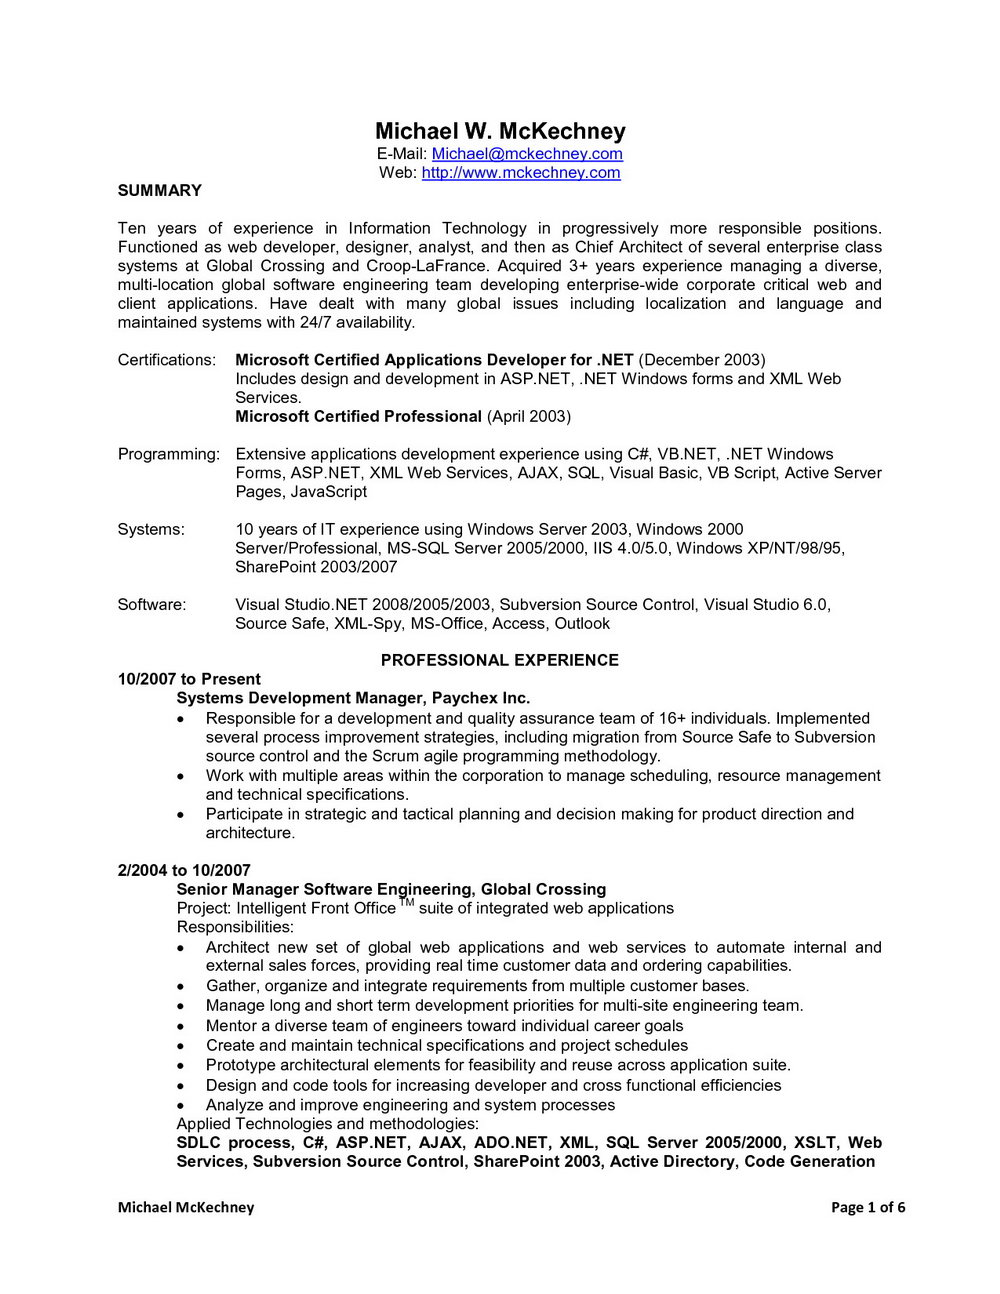 Sample Resume For Dot Net Developer Experience 5 Years